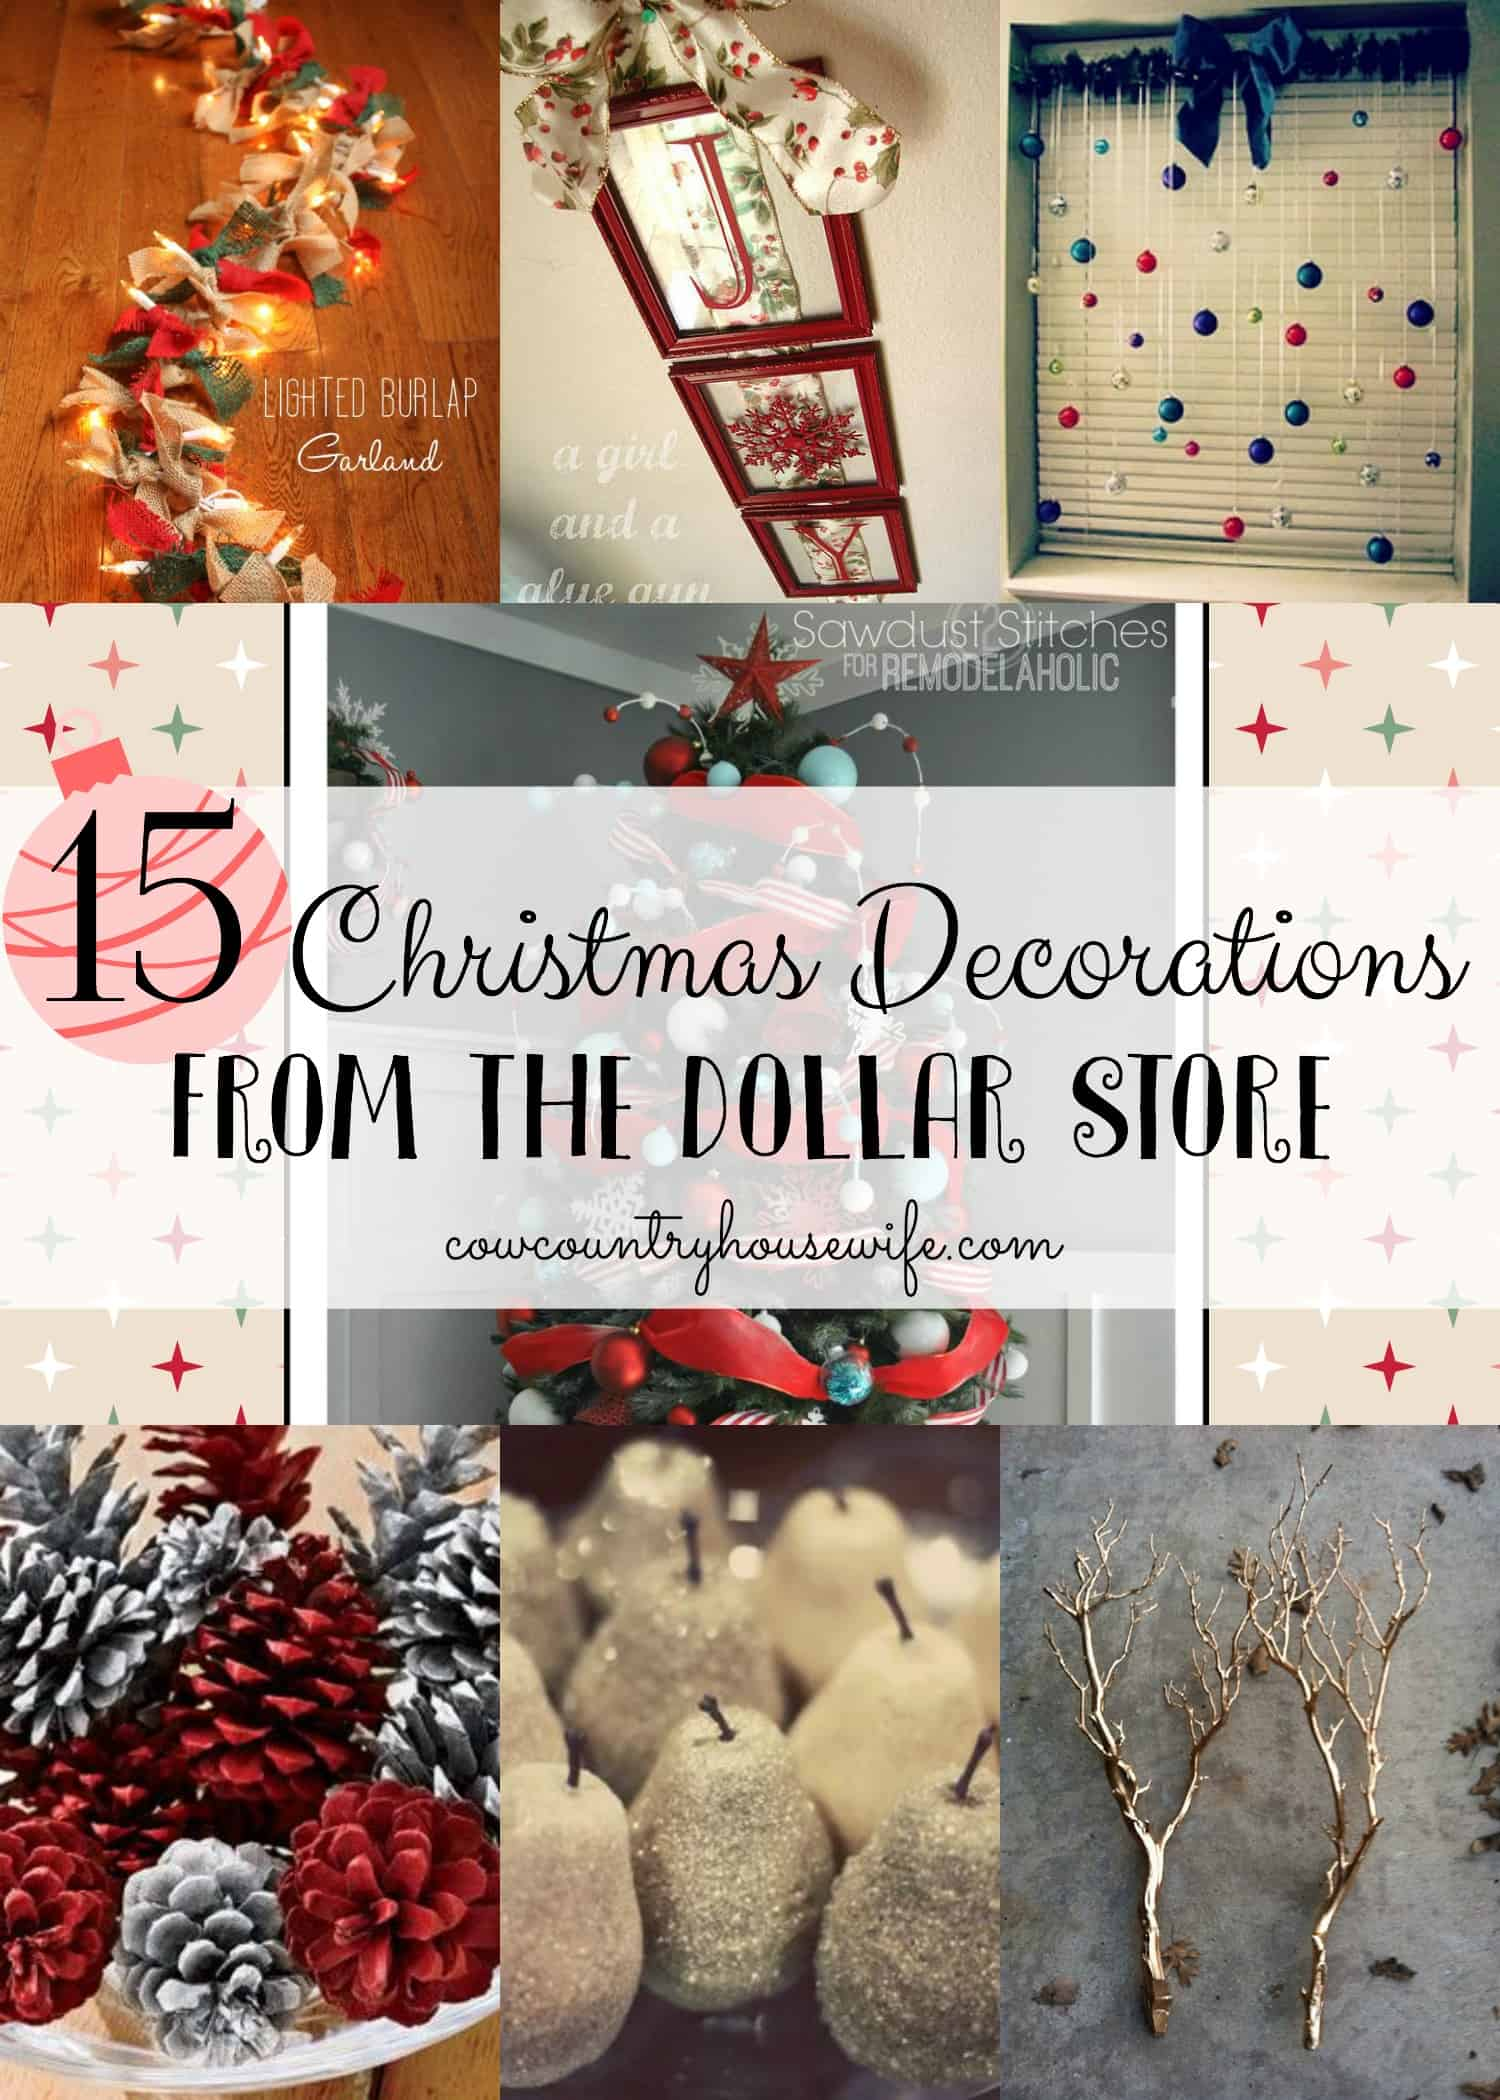 15 Christmas Decorations from the Dollar